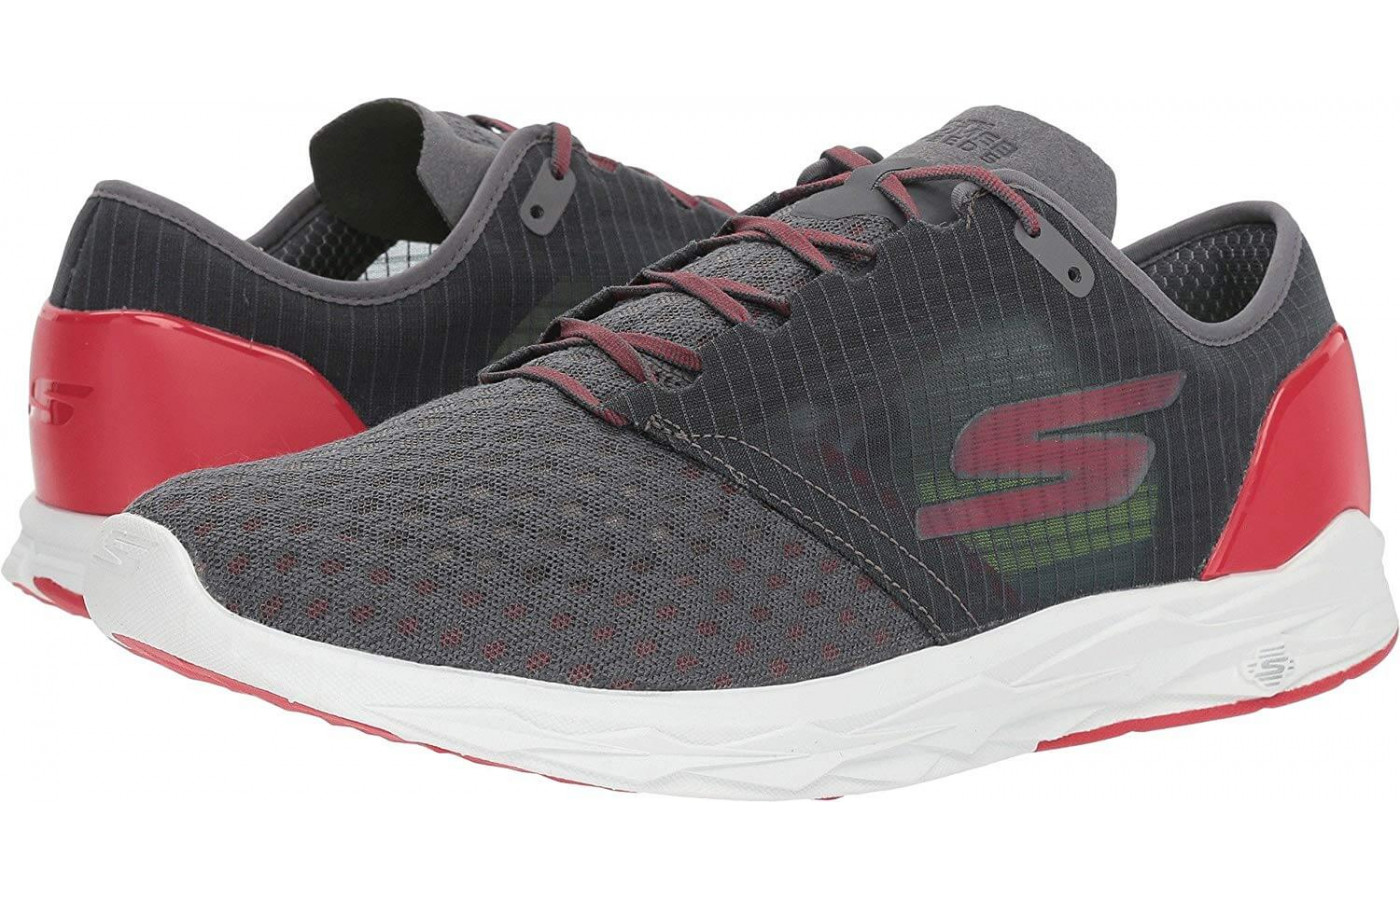 f3566a97 Skechers GoMeb Speed 5 - To Buy or Not in July 2019?